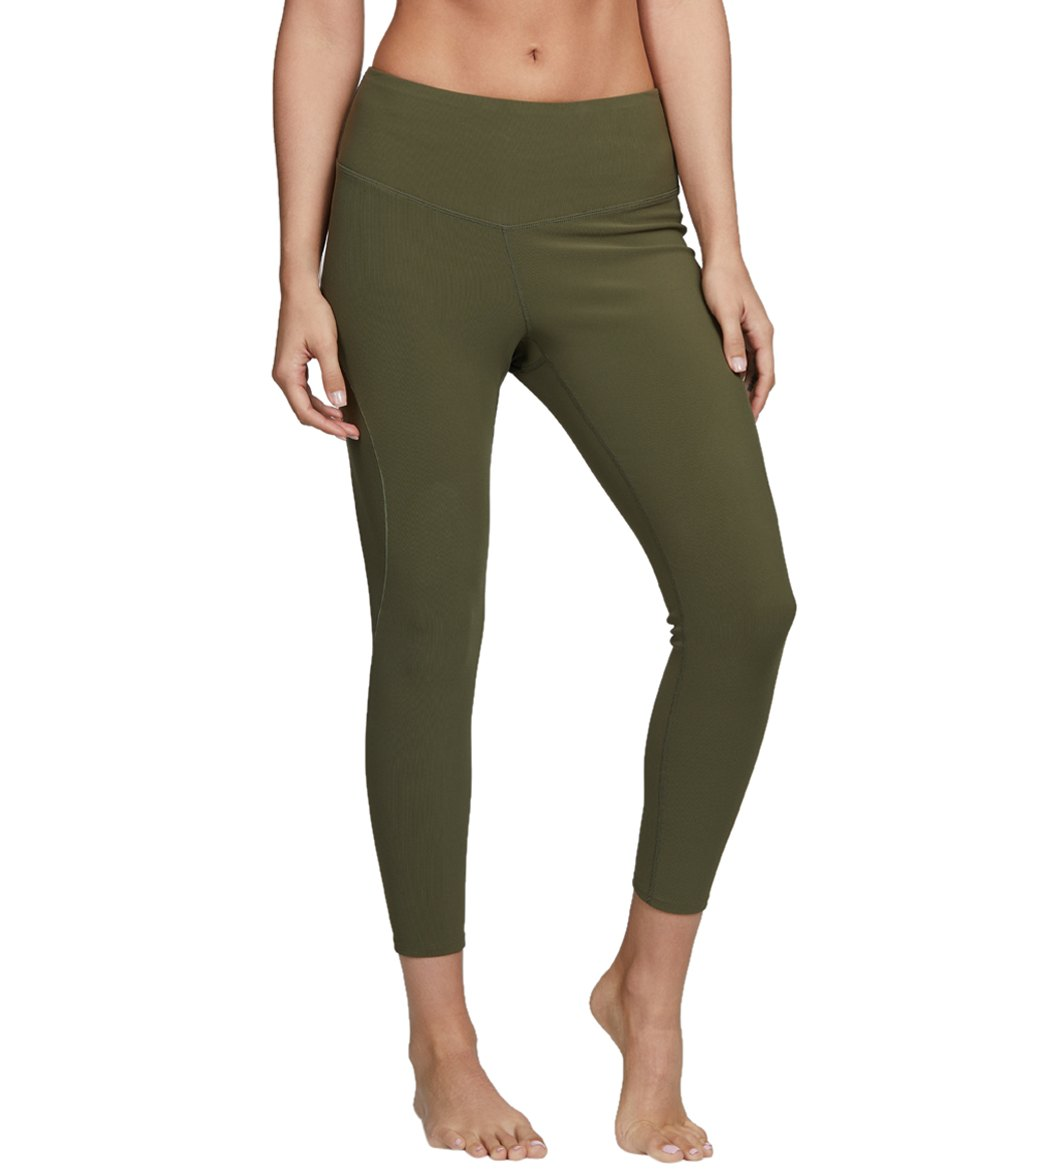 Free People High Waisted Formation Yoga Leggings - Army Spandex